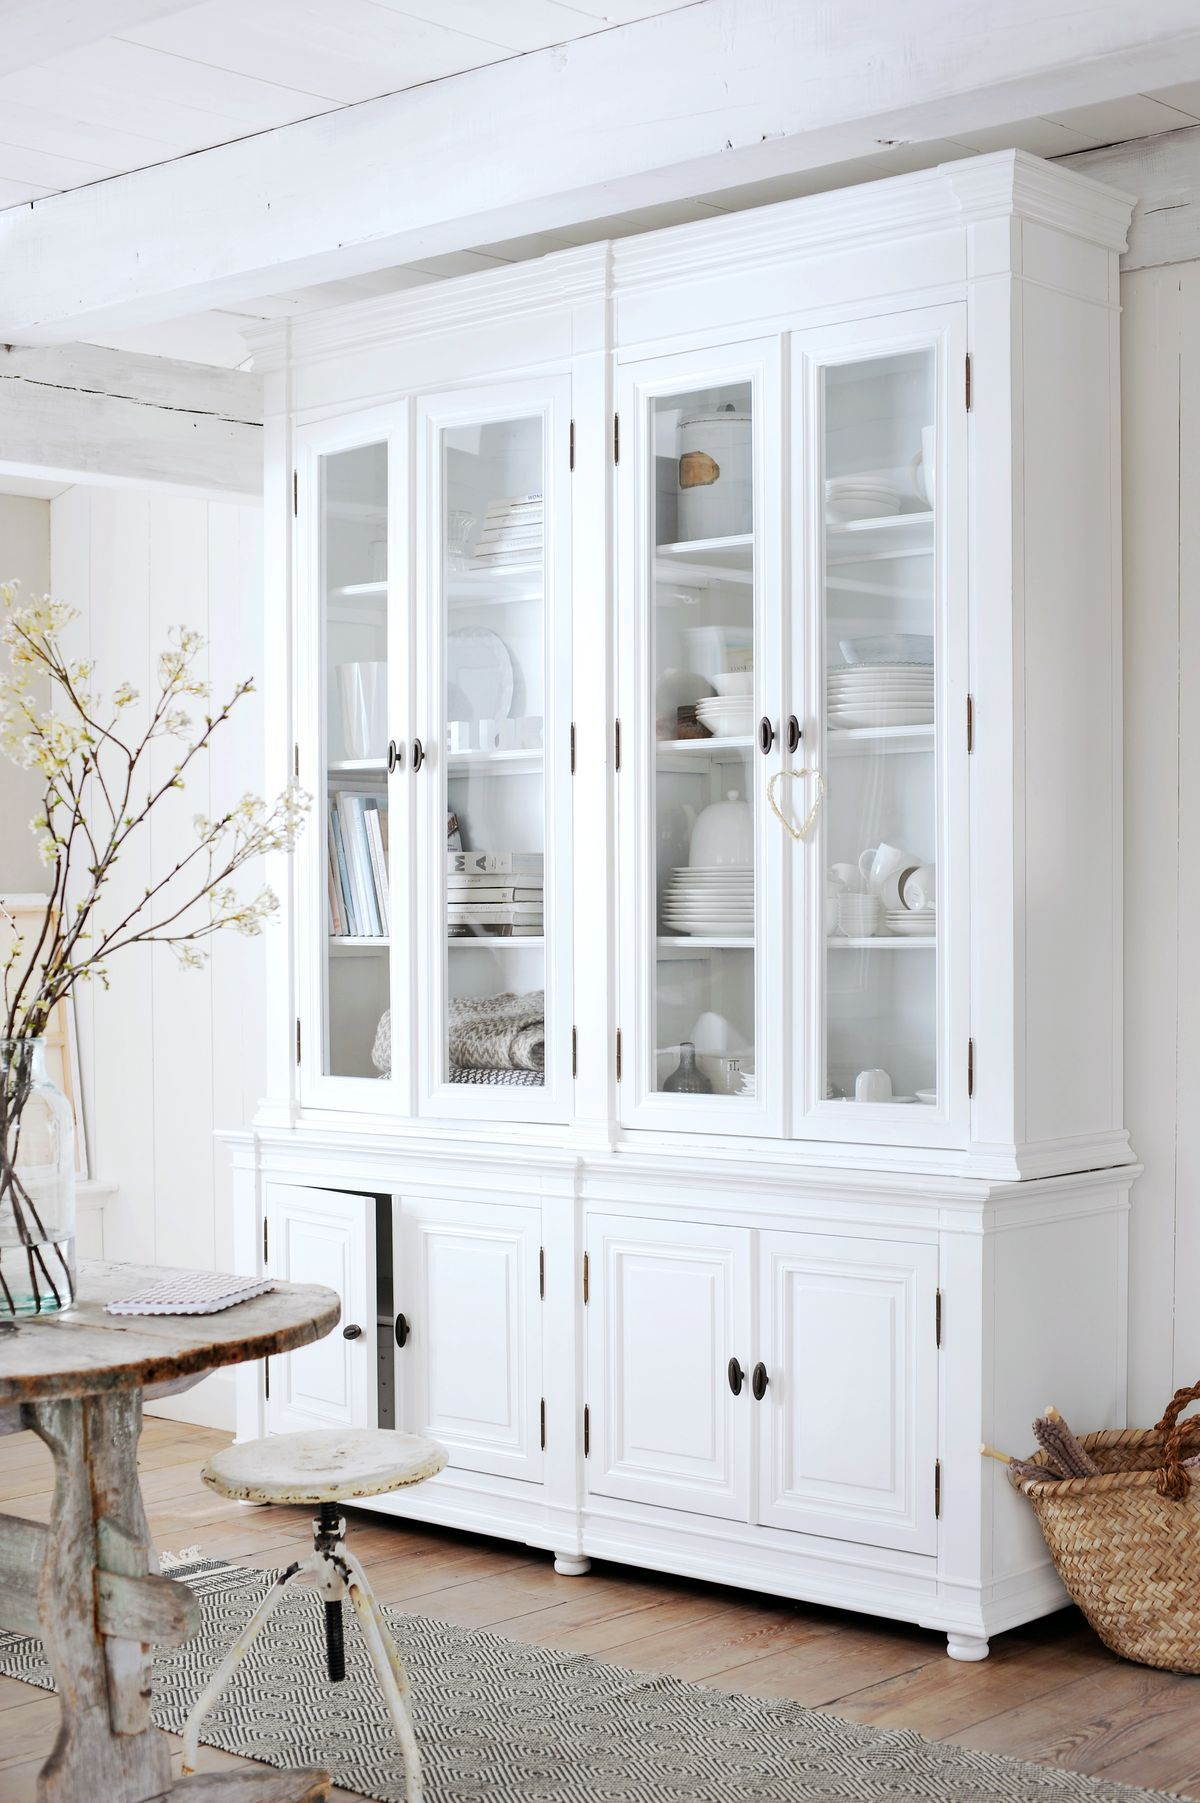 Think Abaout The Mrsfisher Pieces In Just White Inside And Out Extraordinary White Kitchen Hutch Review